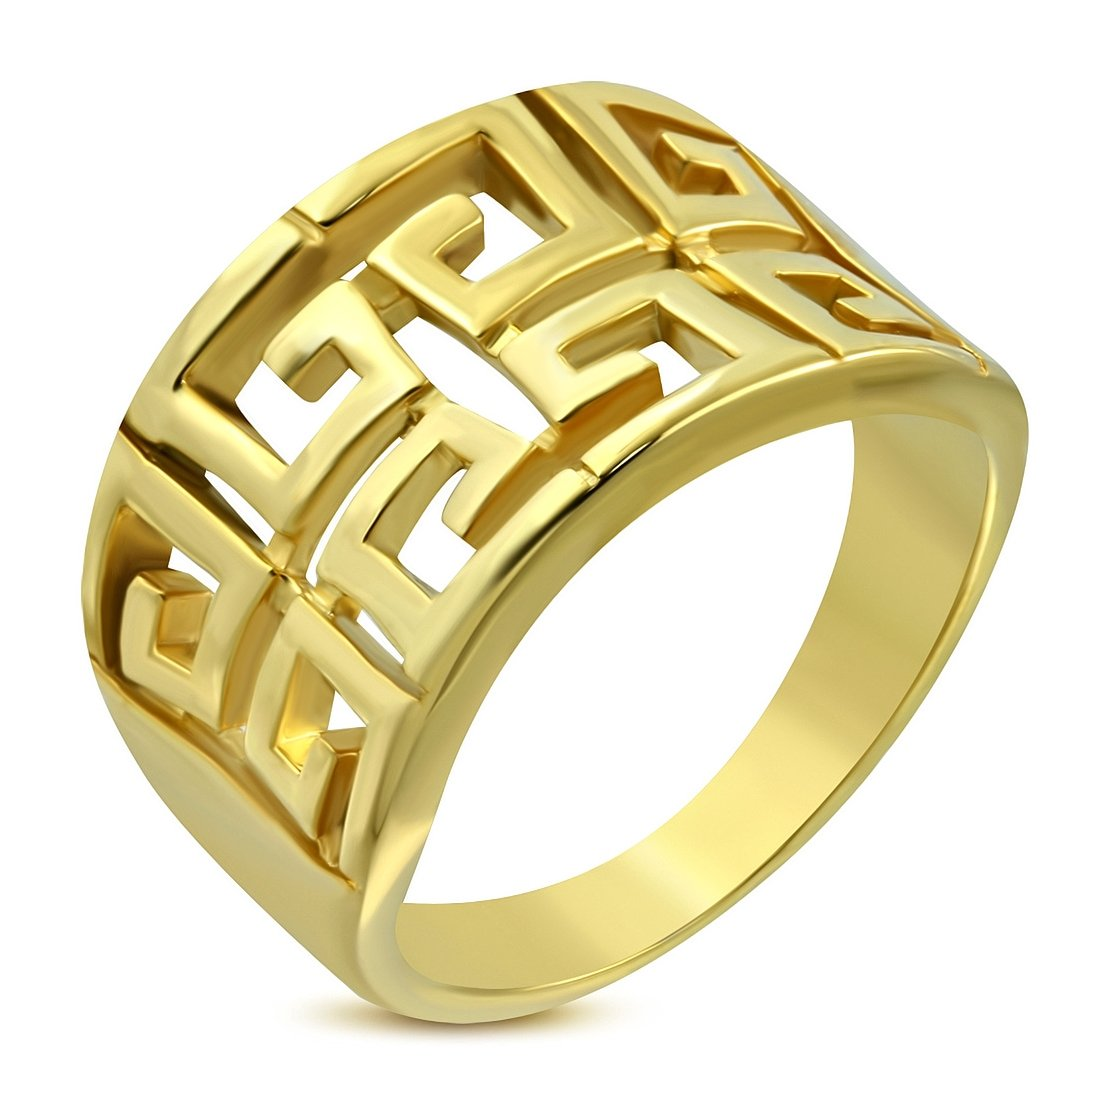 Stainless Steel Gold Color Plated Cut-out Greek Key Concave Ring NRG Jewelry